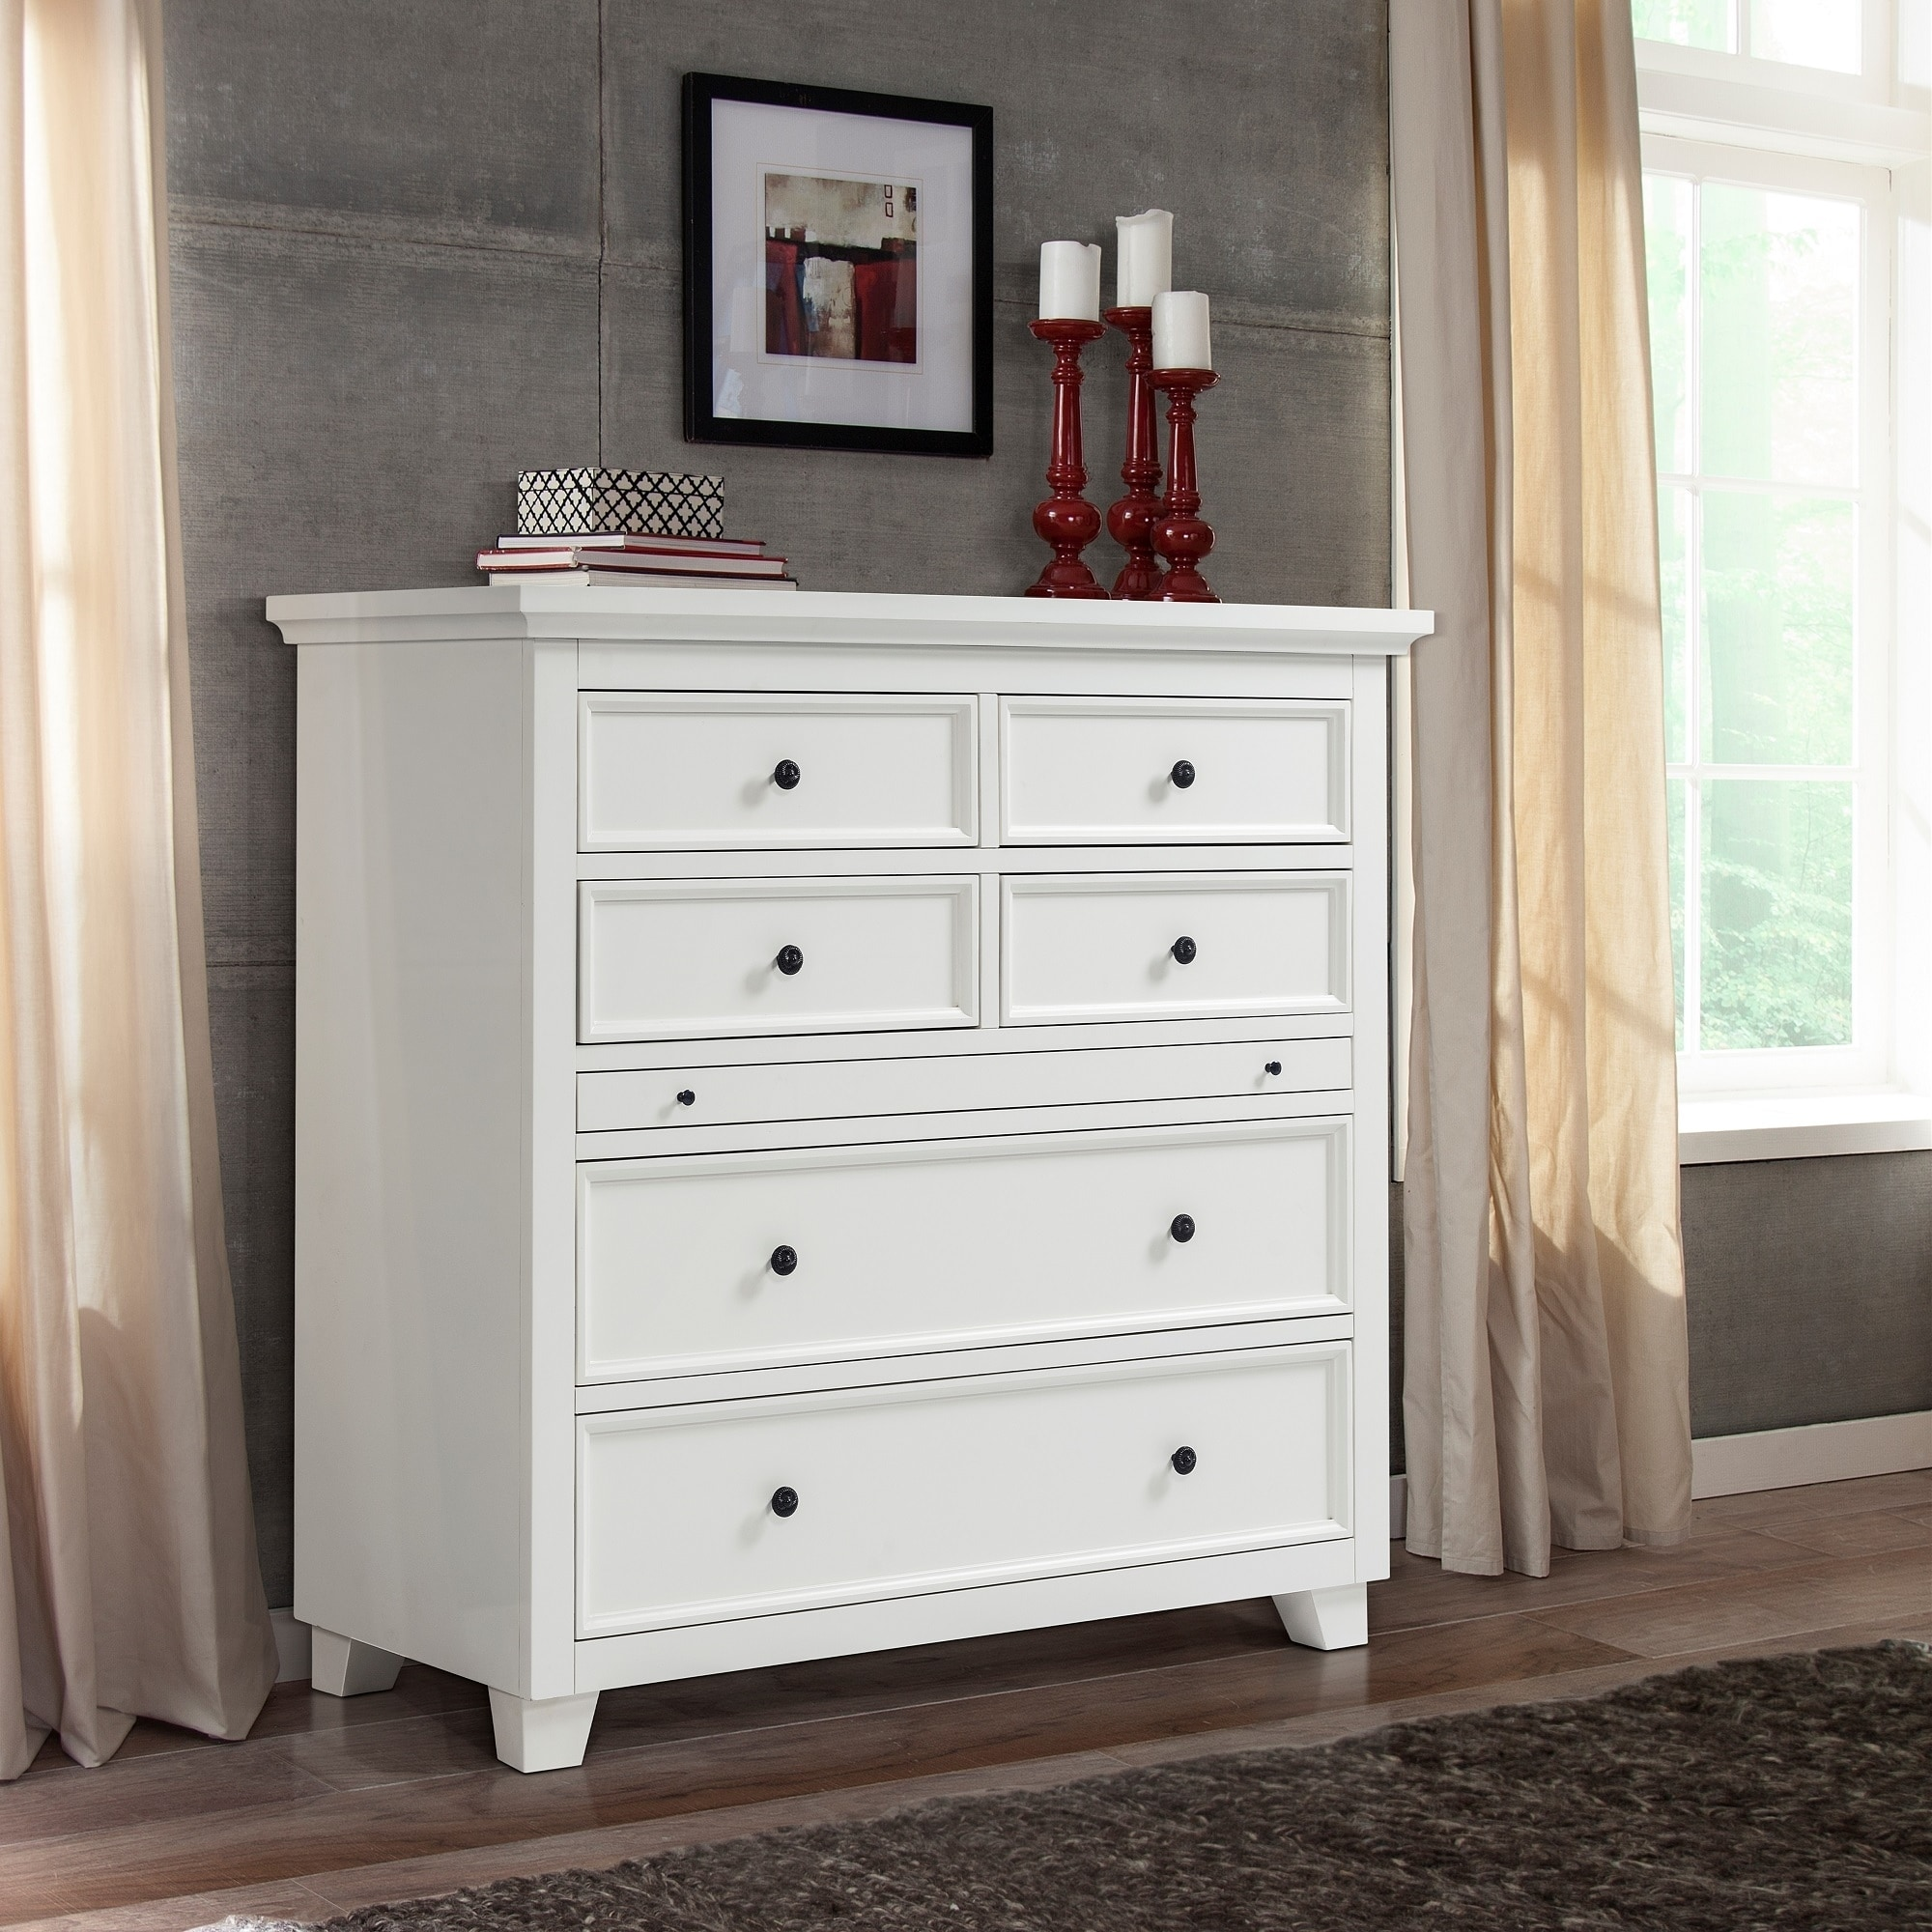 Le Bon Coin Ameublement Ain bermuda dunes 6 drawer chest with jewelry tray | furniture